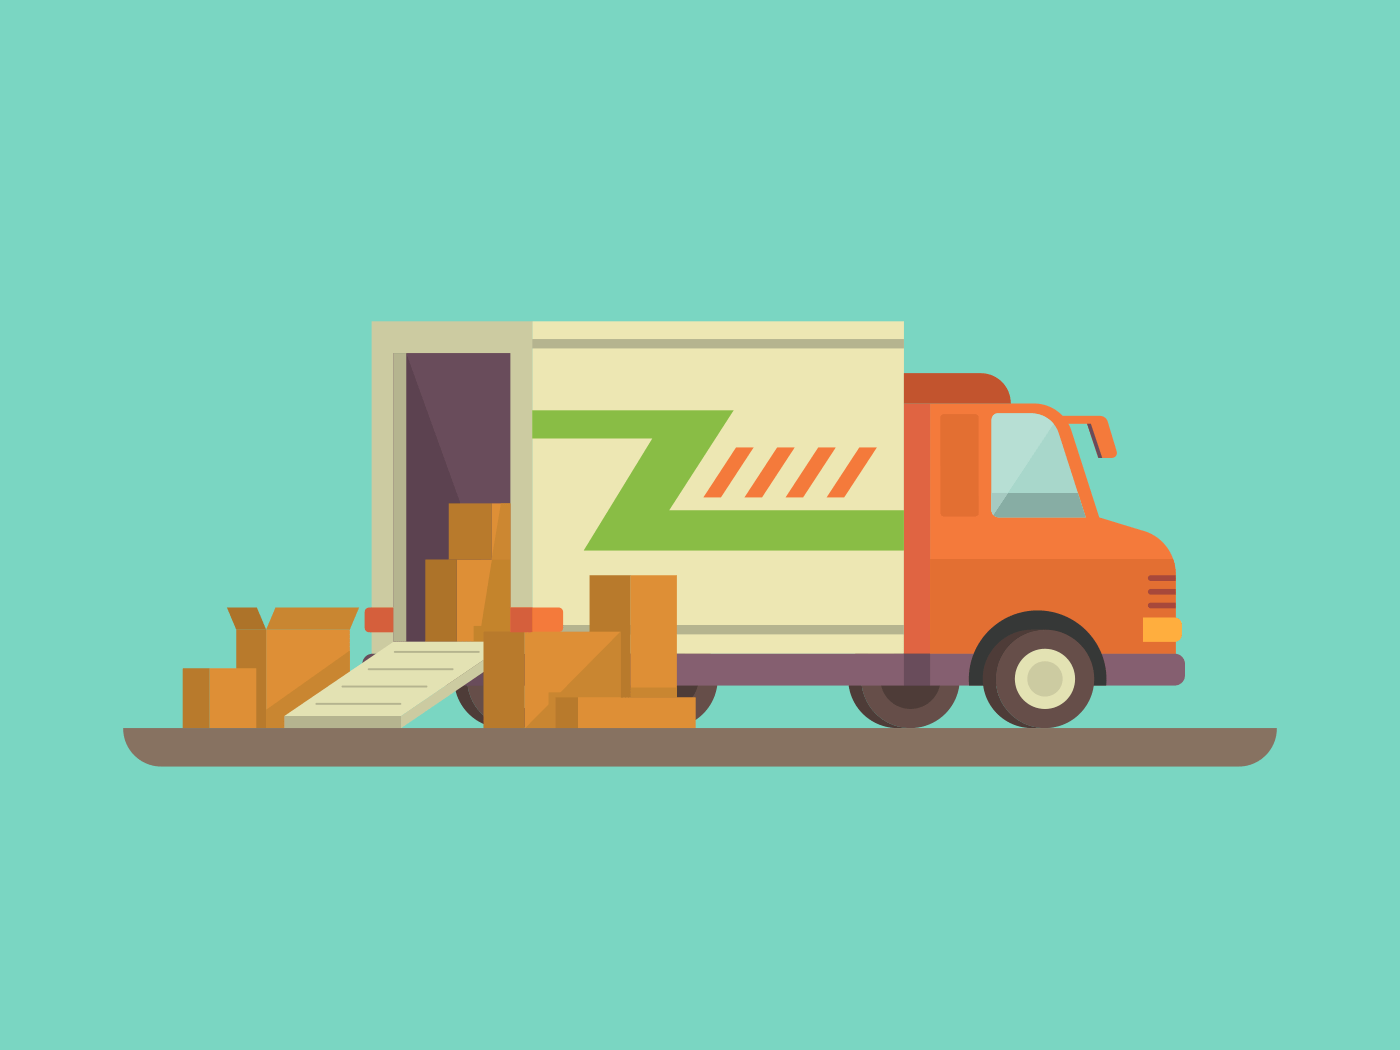 Delivery truck illustration